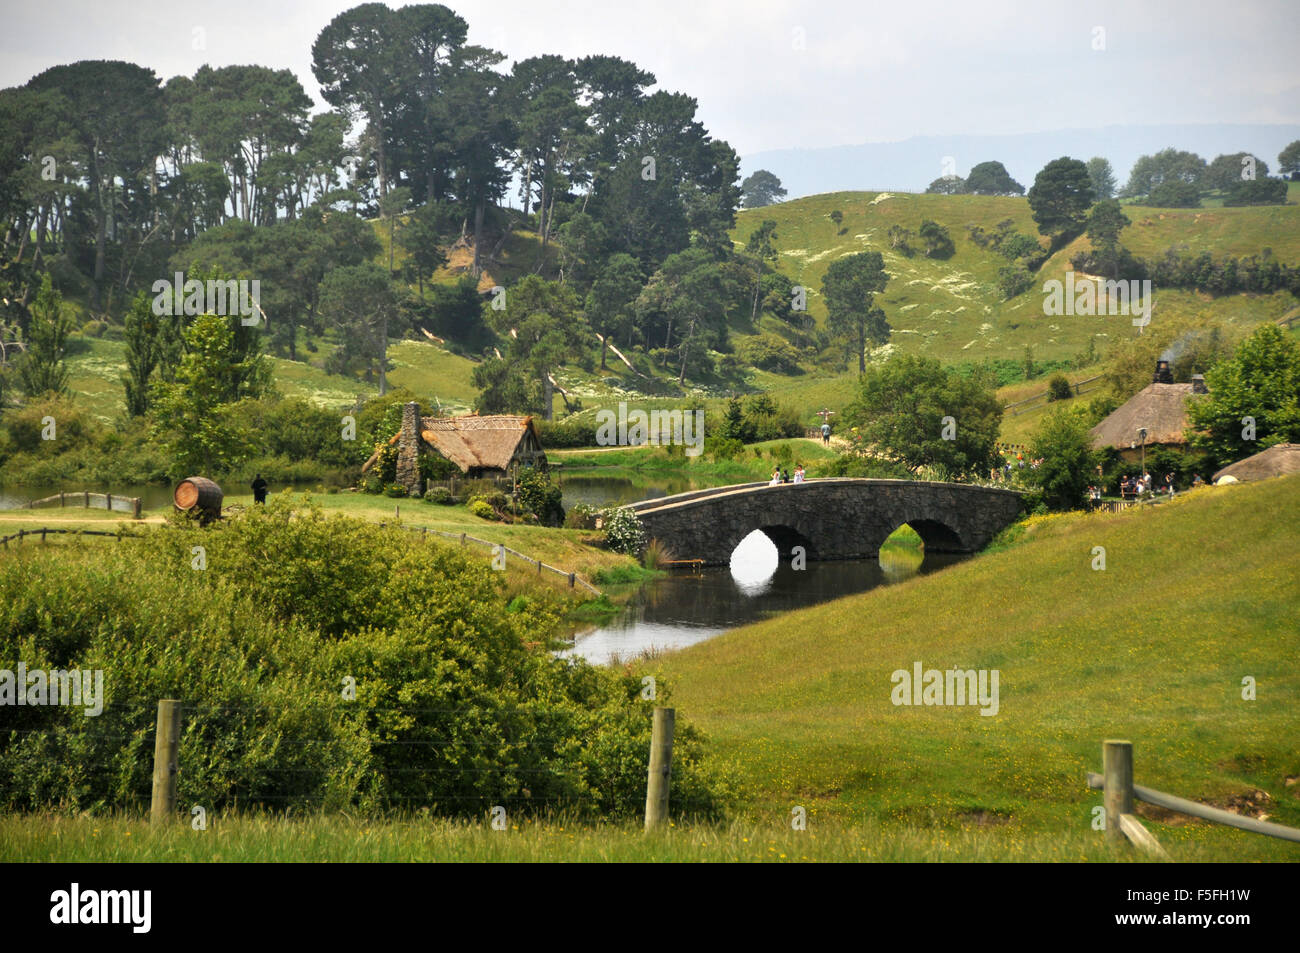 Hobbiton movie set, North Island, New Zealand - Stock Image